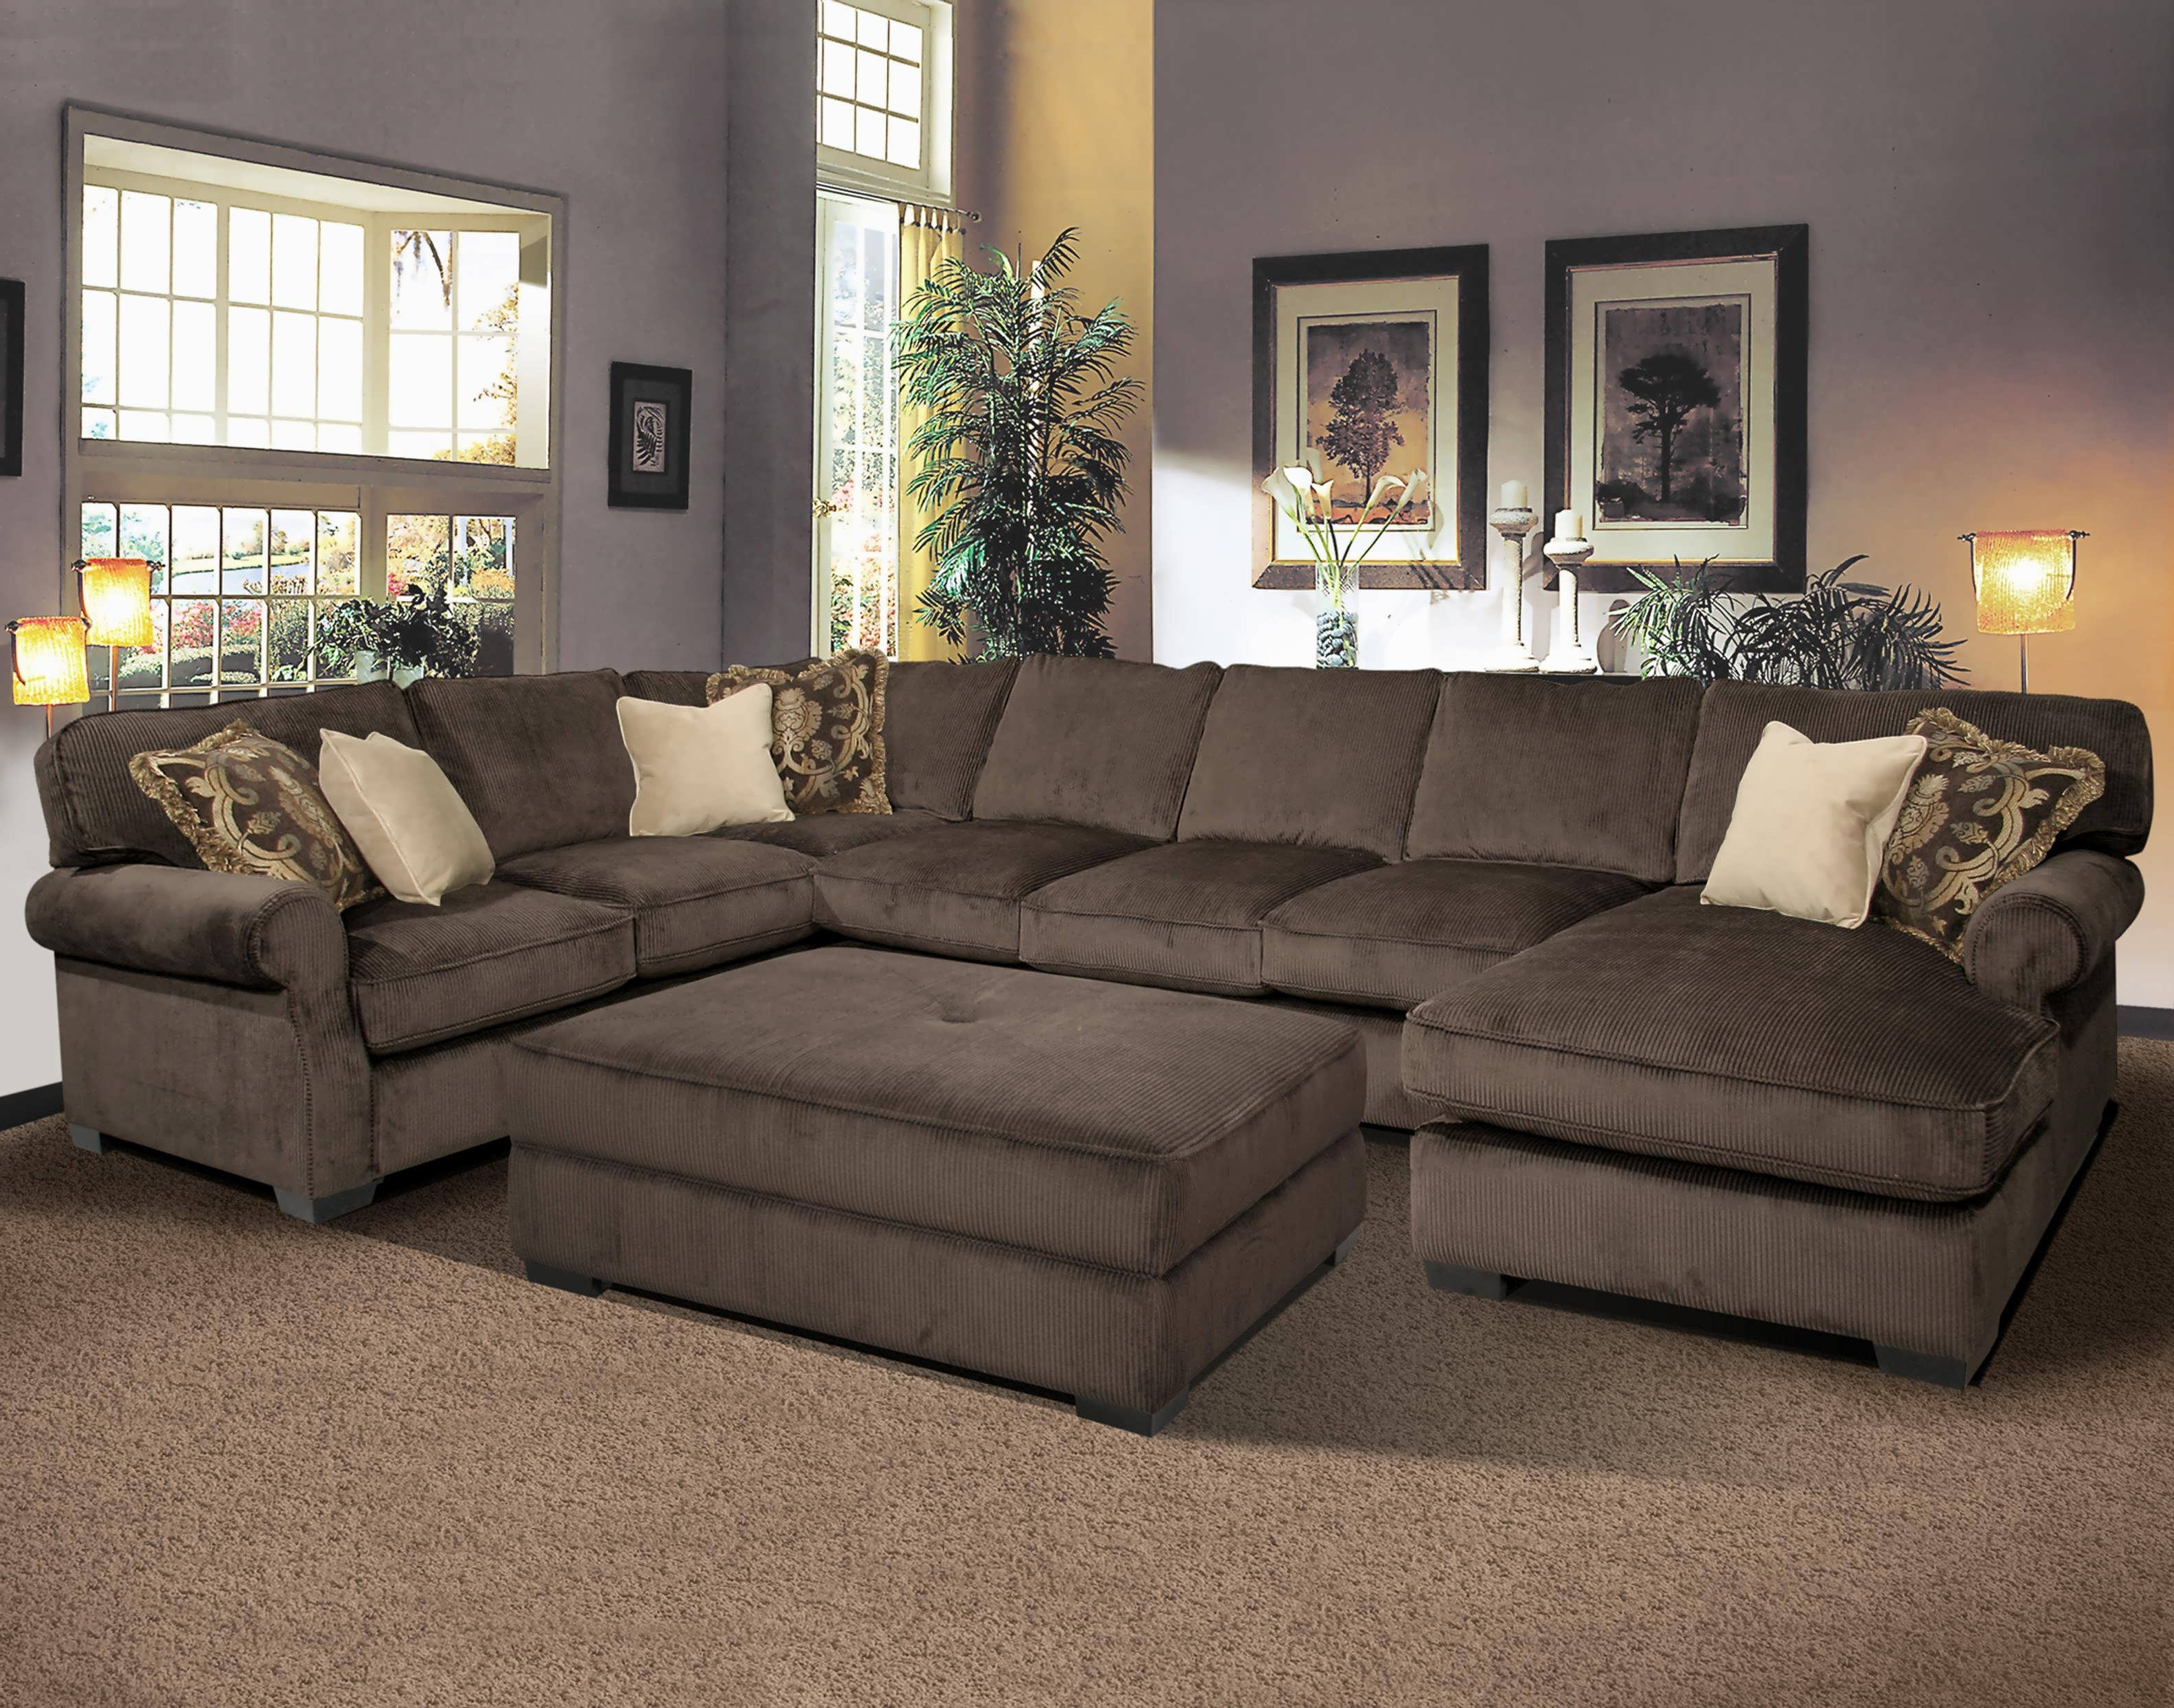 Most Recent Microfiber Sectionals With Chaise With Sofa : Leather Sectional Sofa Large Sectional Red Sectional Sofa (View 4 of 15)